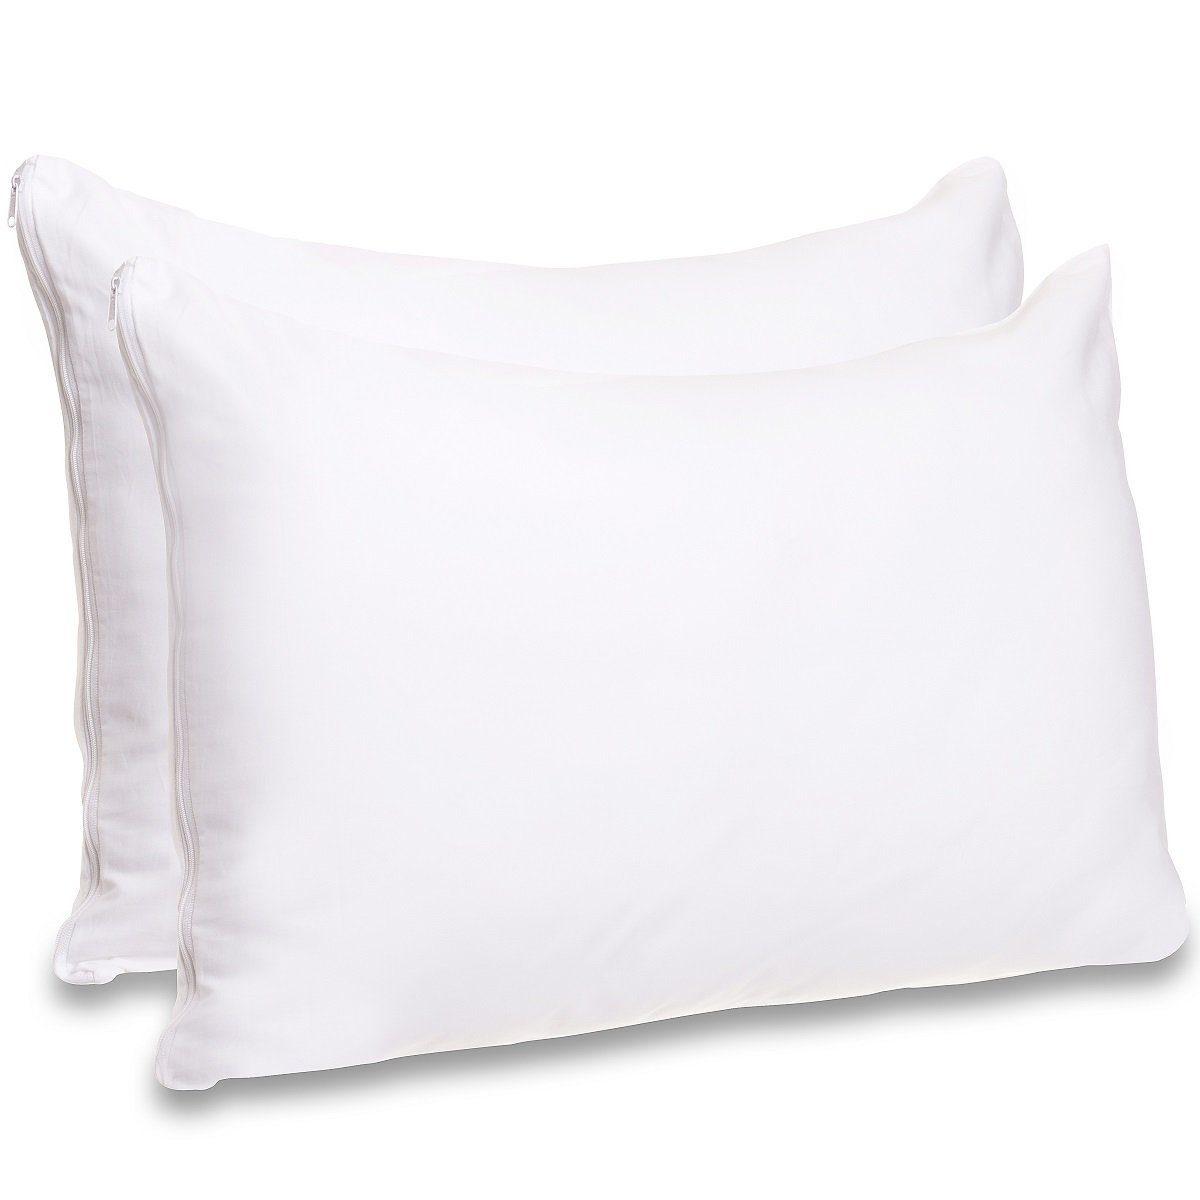 Mellanni Cotton Pillow Cases w/Zipper - Set of 2 Standard Pillow Covers, Protectors